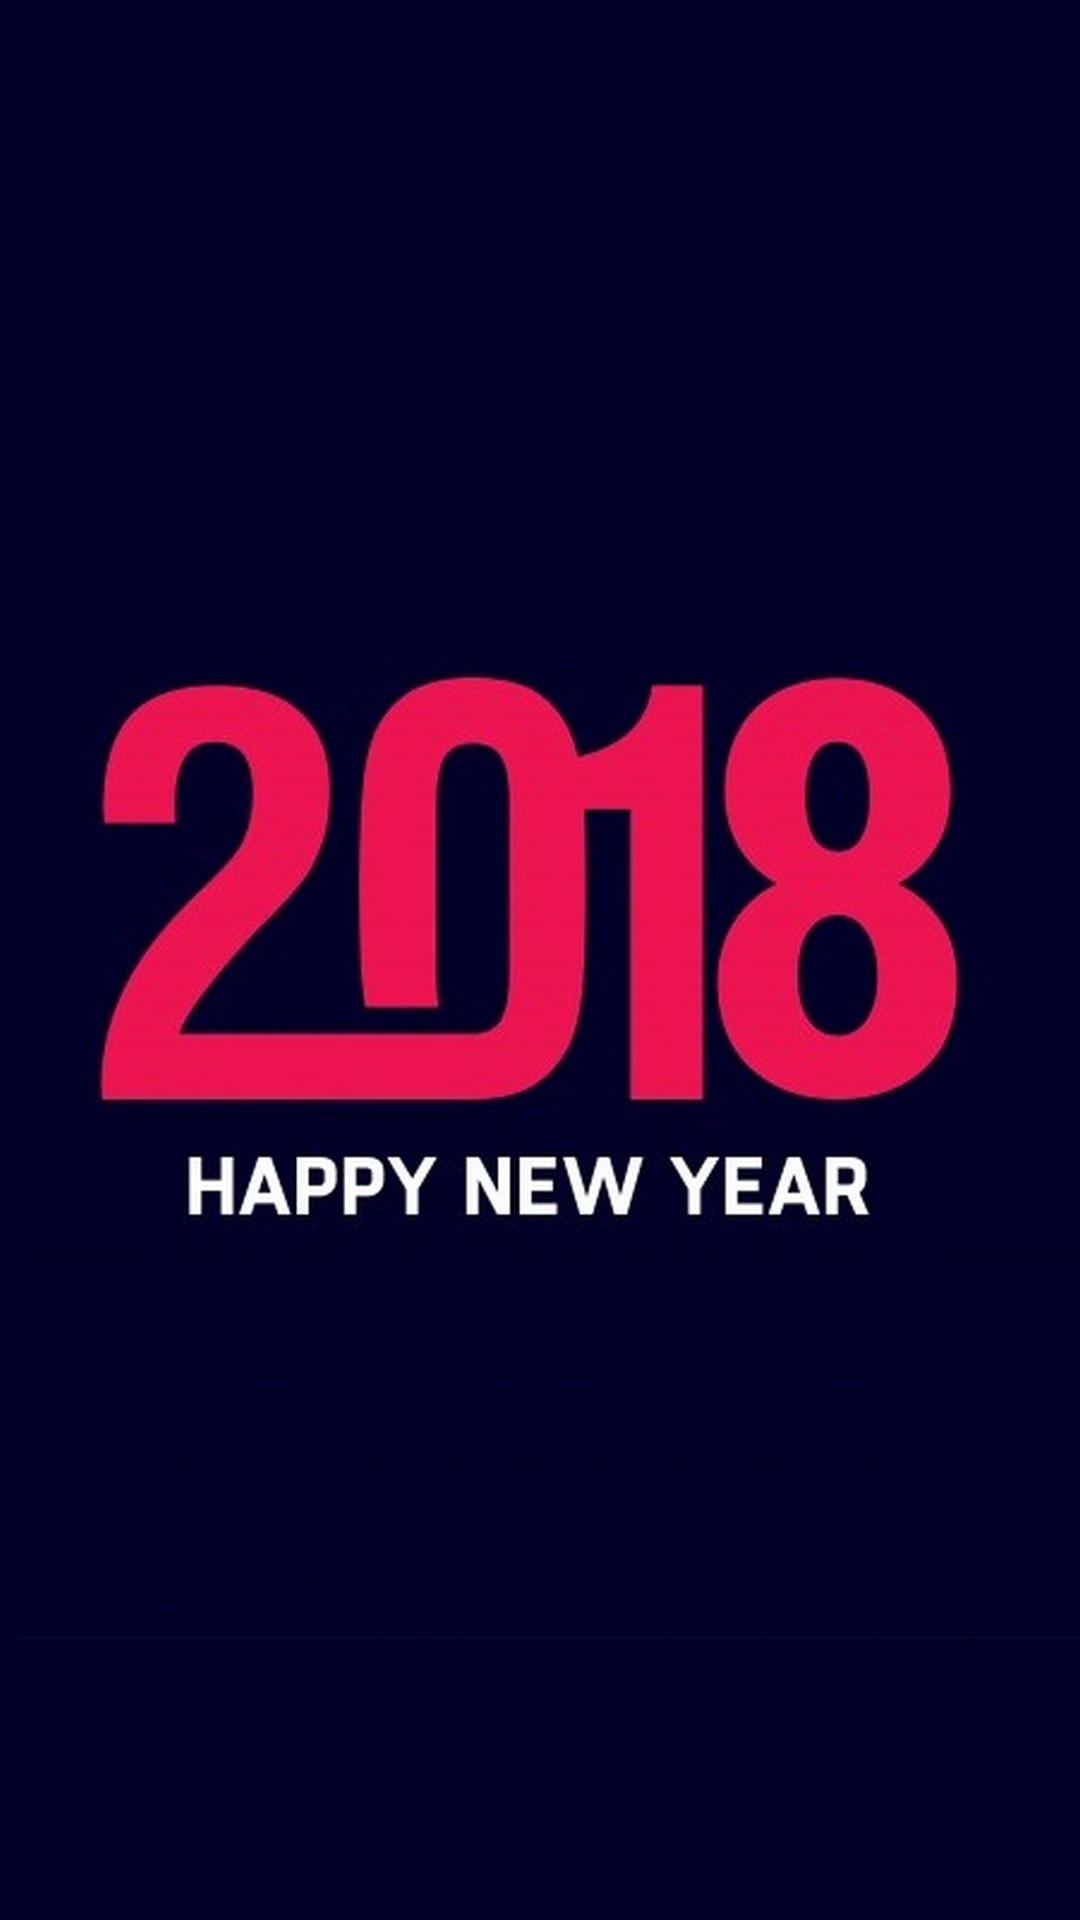 Iphone Wallpaper Happy New Year 2018 Text Resolution - Foundation , HD Wallpaper & Backgrounds